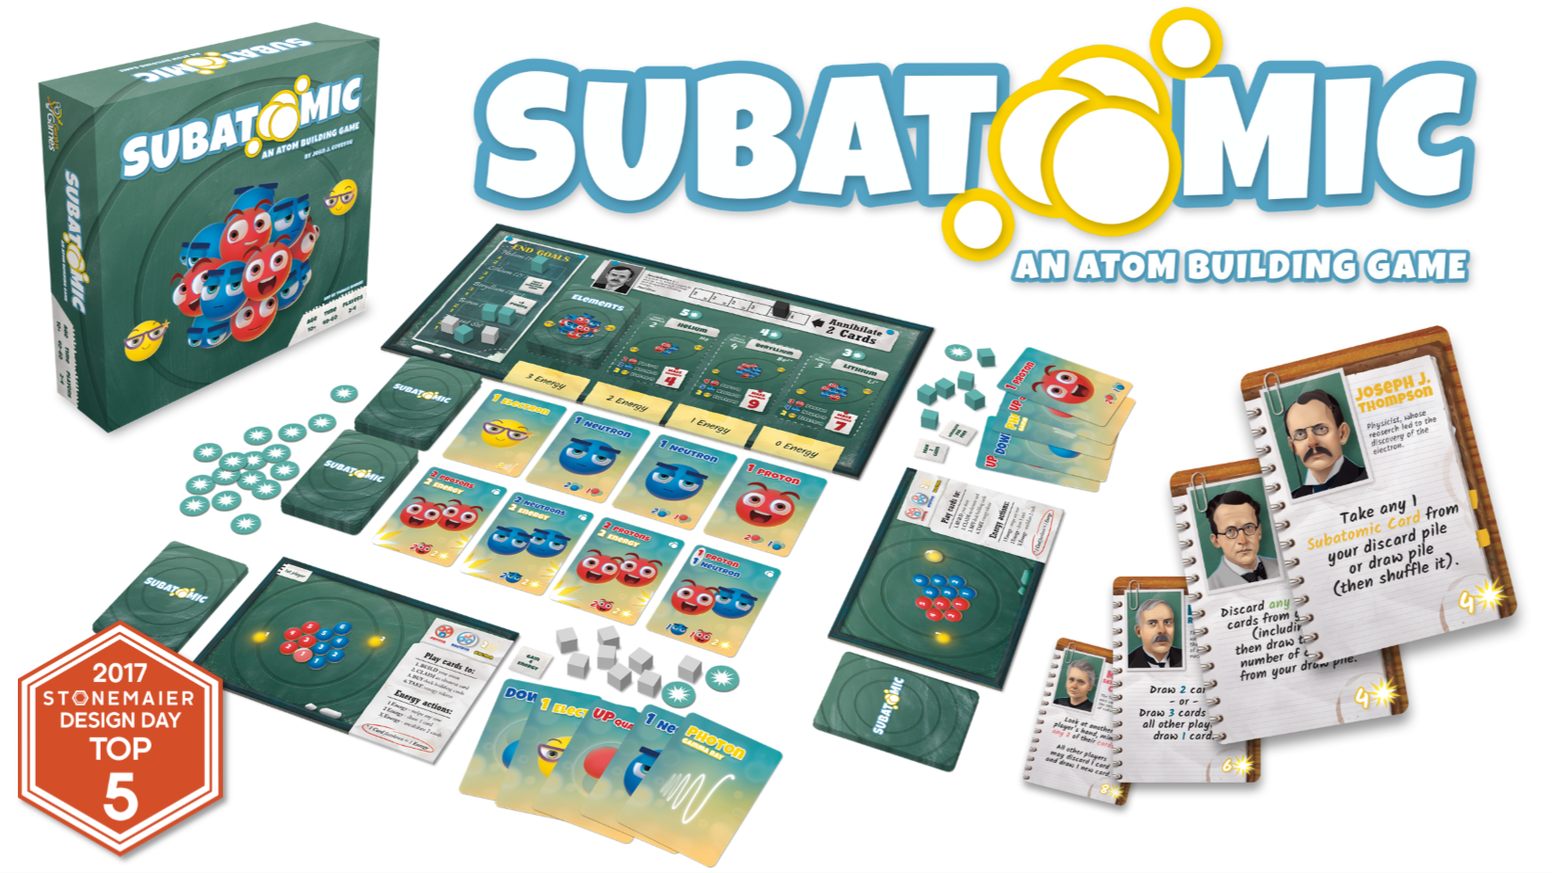 A deck-building game where particle physics & chemistry collide! Use quarks to build subatomic particles & particles to build Atoms!